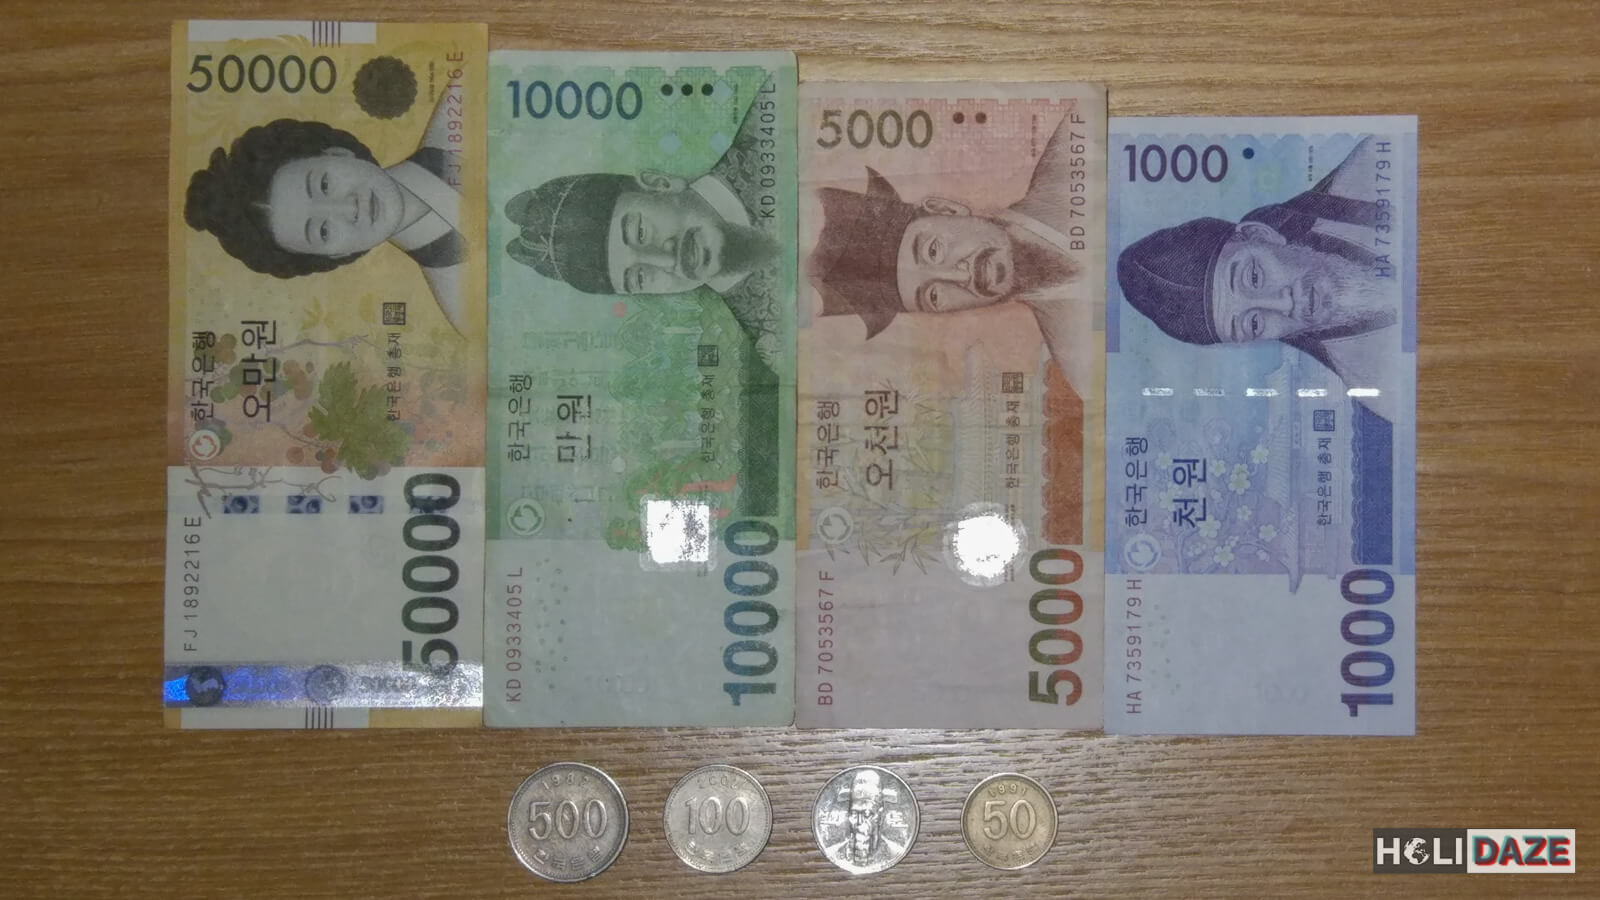 Korean currency is called 'won' and denominations range from 1,000 to 50,000 plus coins for 500 won and less